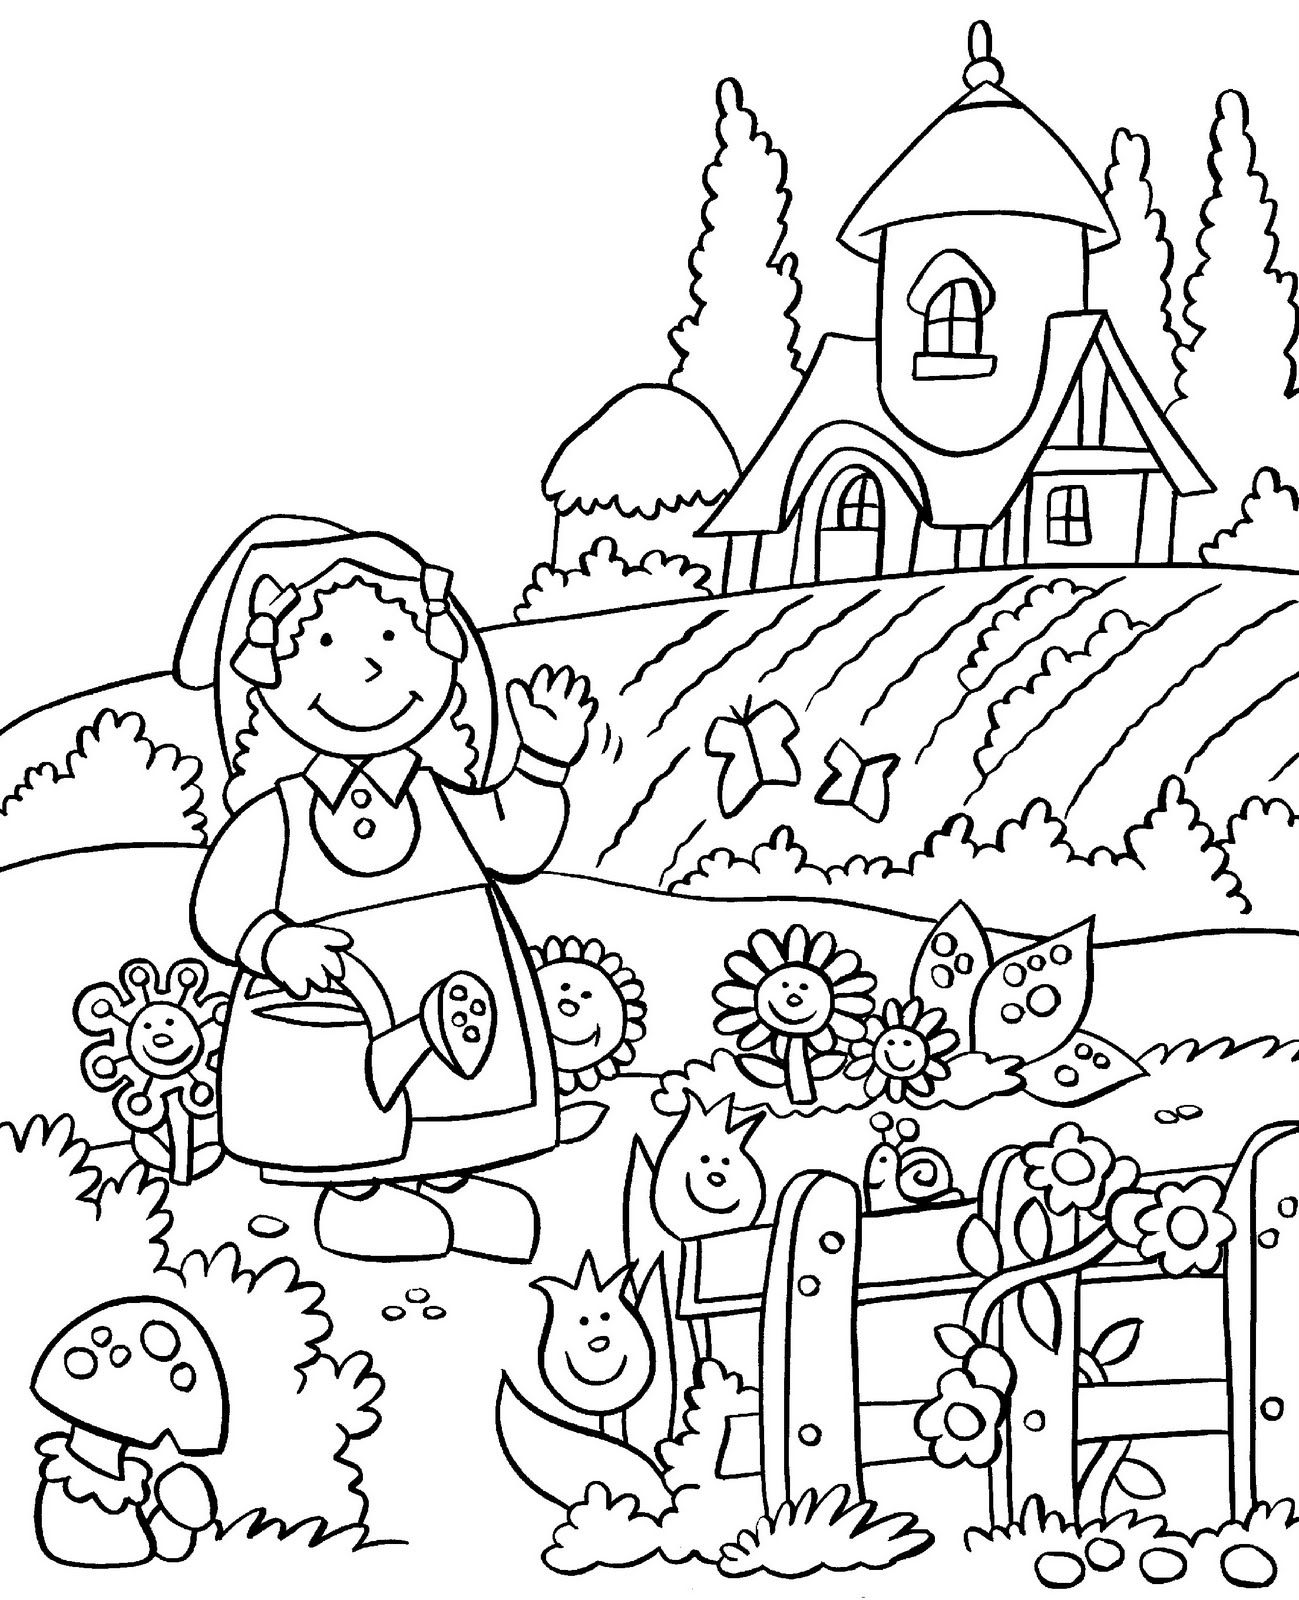 This is Country coloring pages